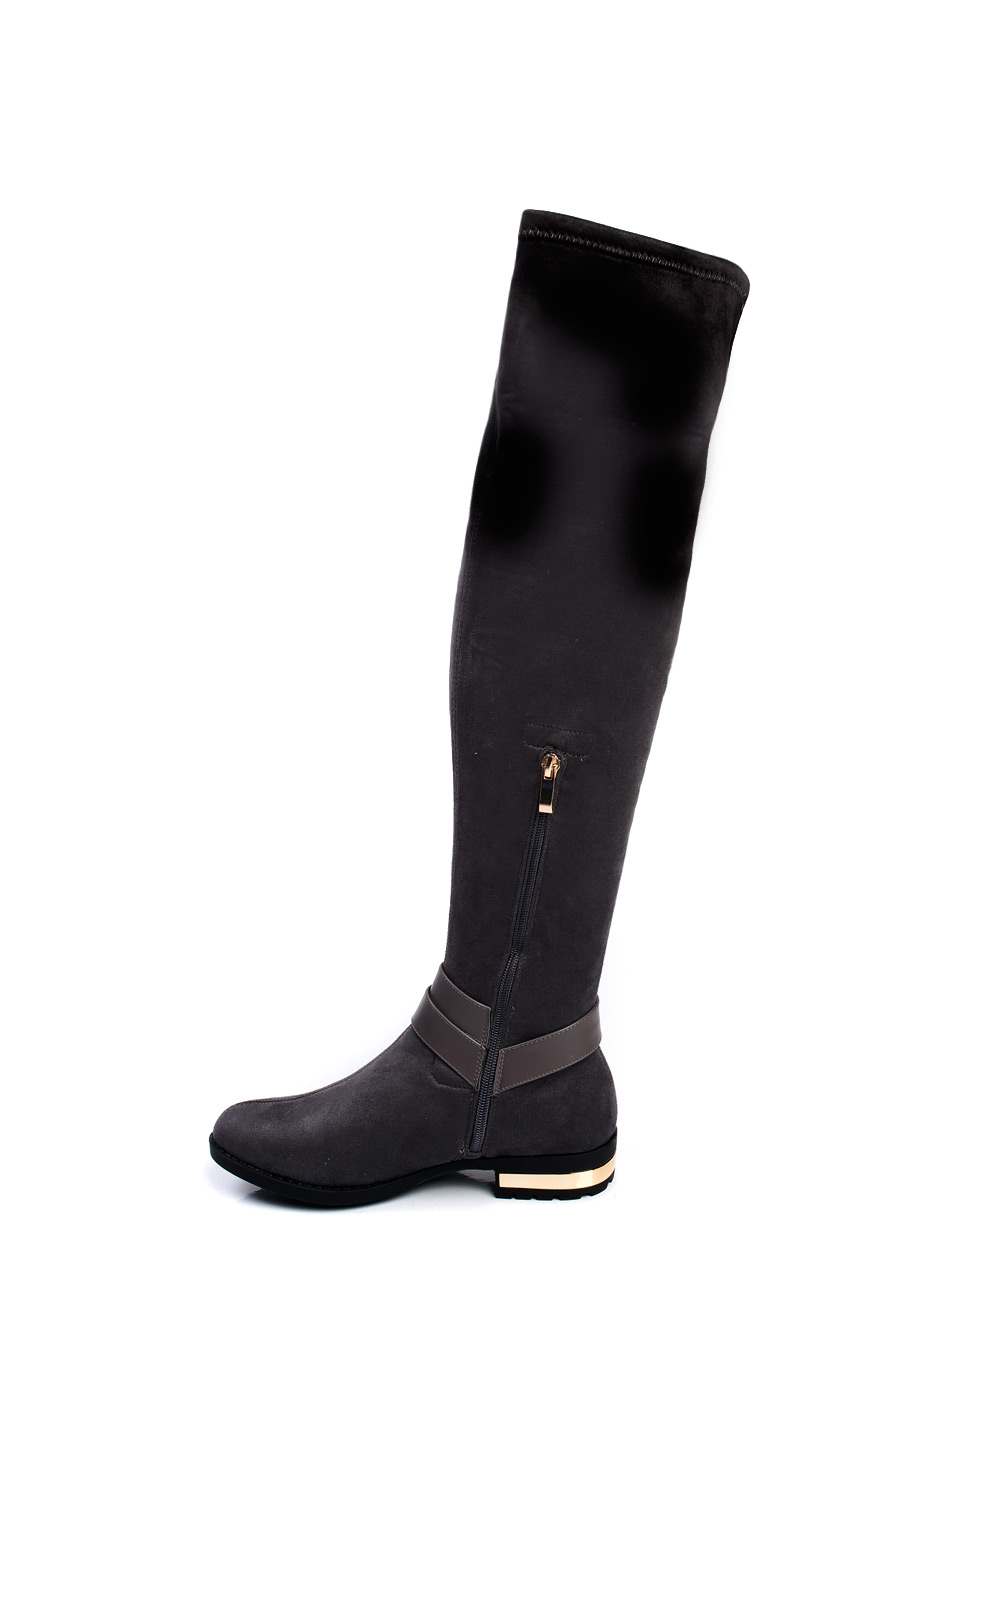 IKRUSH Womens Irena Faux Suede Gold Bar Knee High Boots